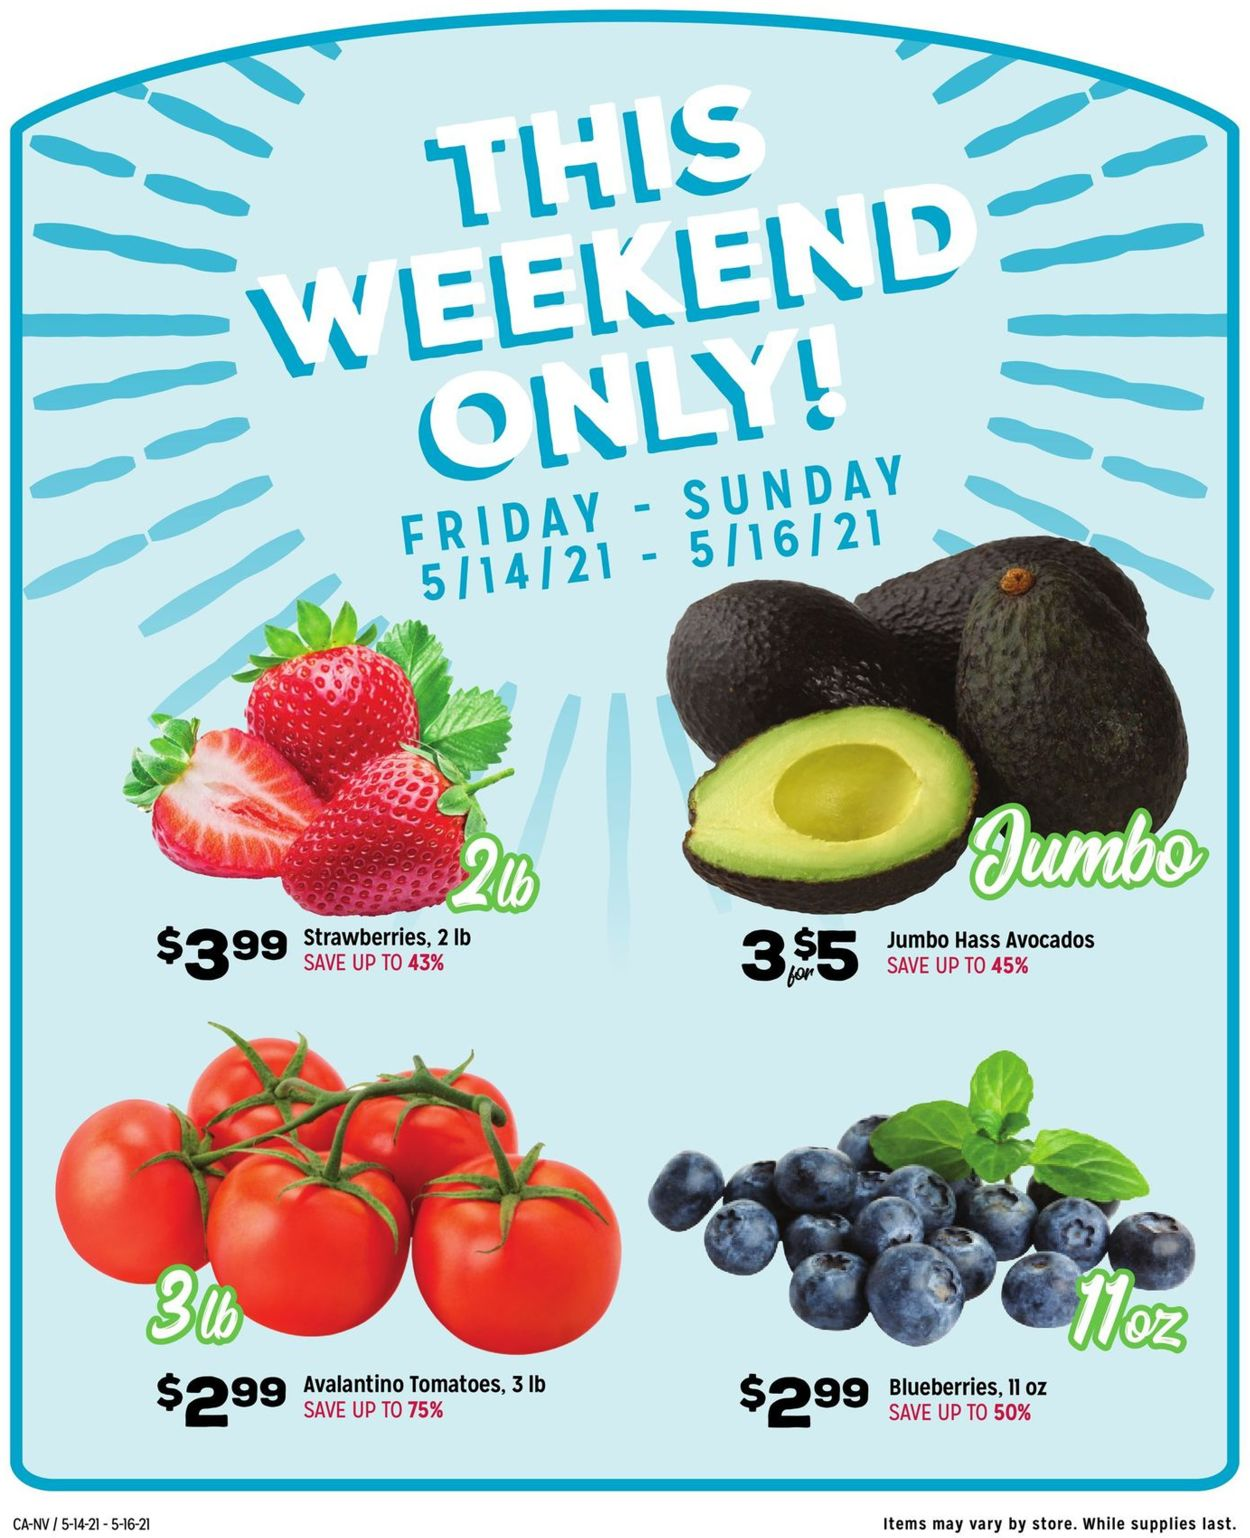 Grocery Outlet Weekly Ad Circular - valid 05/12-05/18/2021